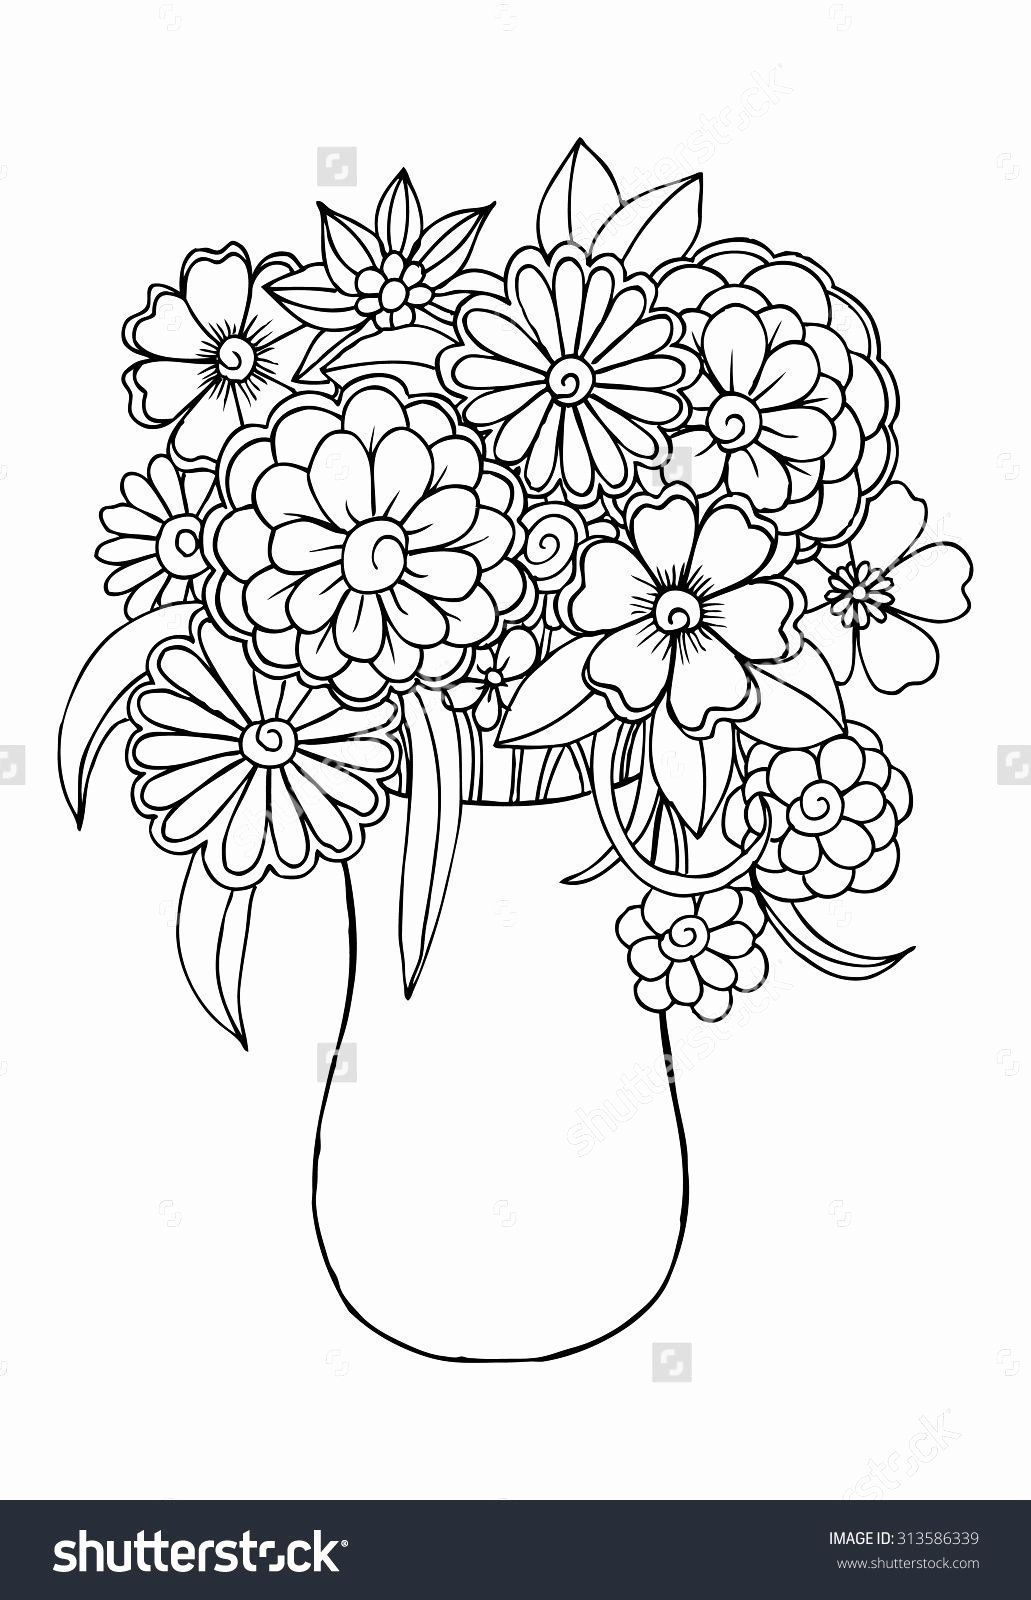 Coloring Pages Spring Flowers Best Of Vector Bouquet Of Flowers In A Vase Bouque Bouquet Colori In 2020 Flower Coloring Pages Flower Coloring Sheets Coloring Pages